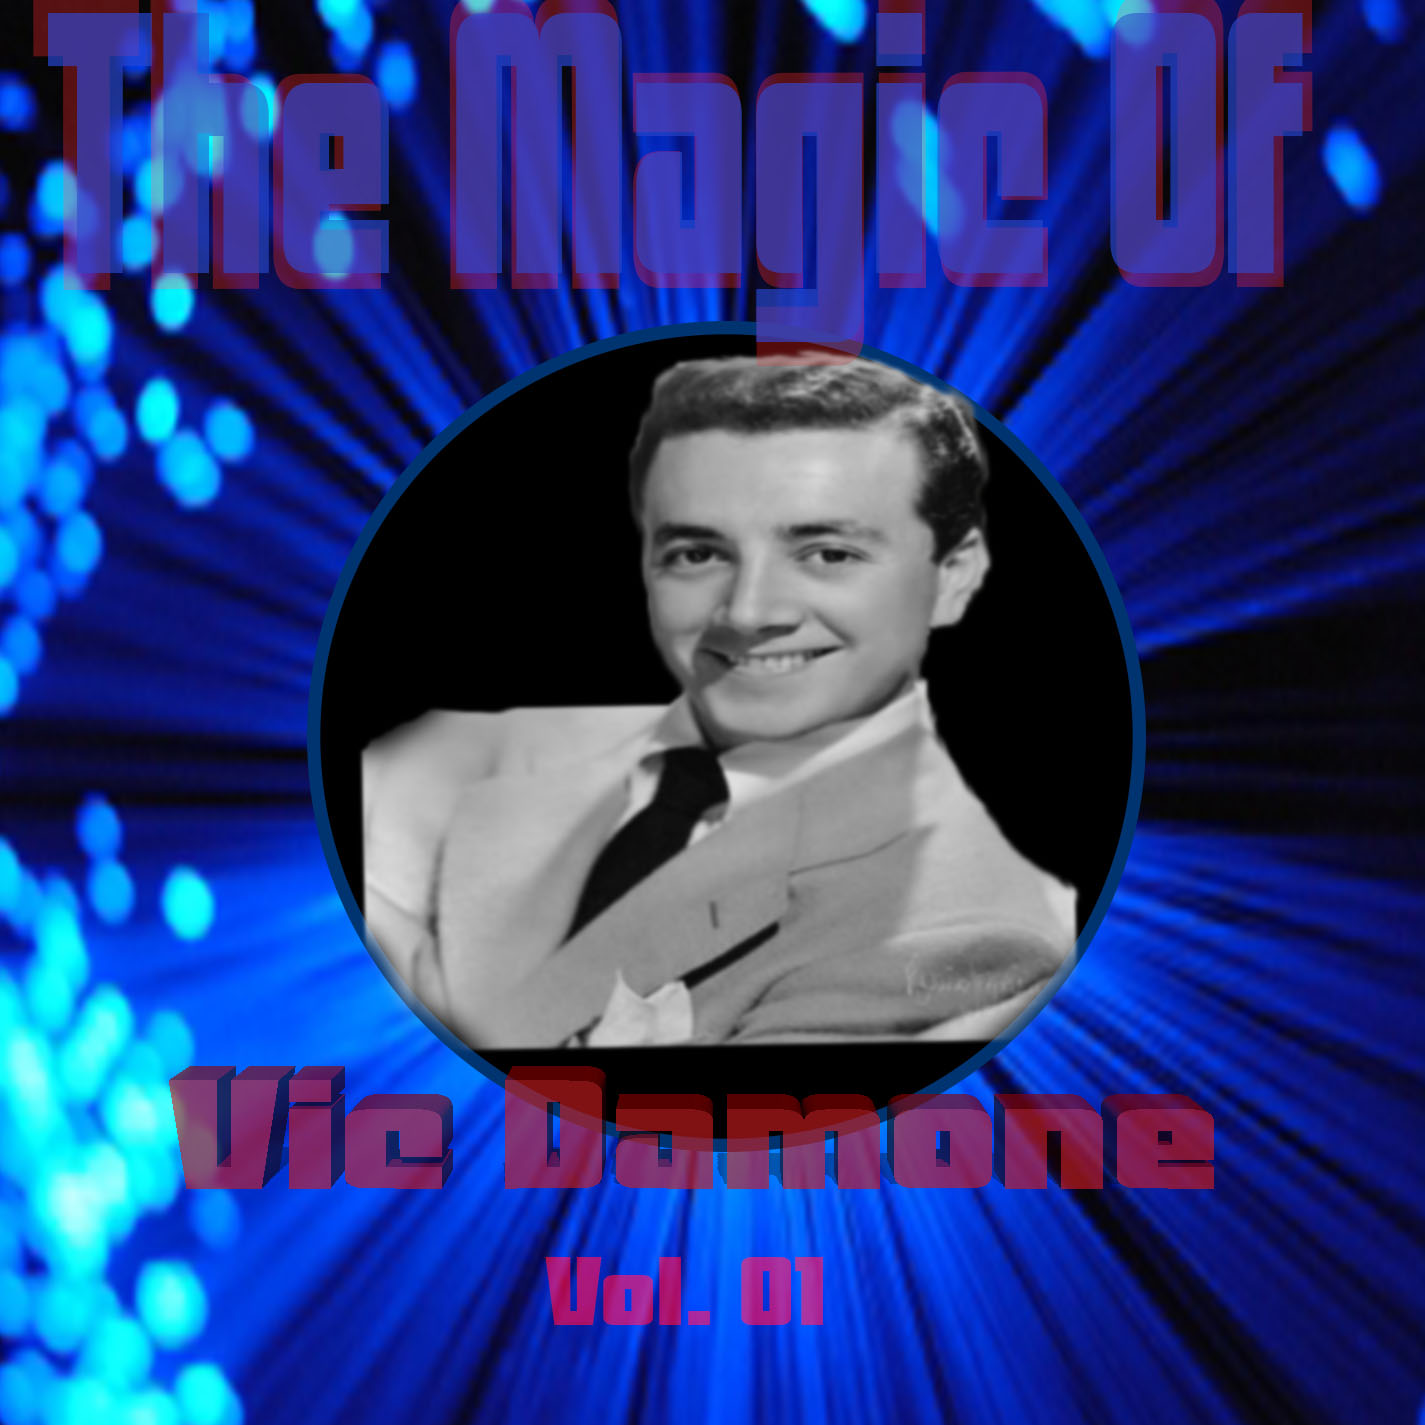 official website of vic damone 2